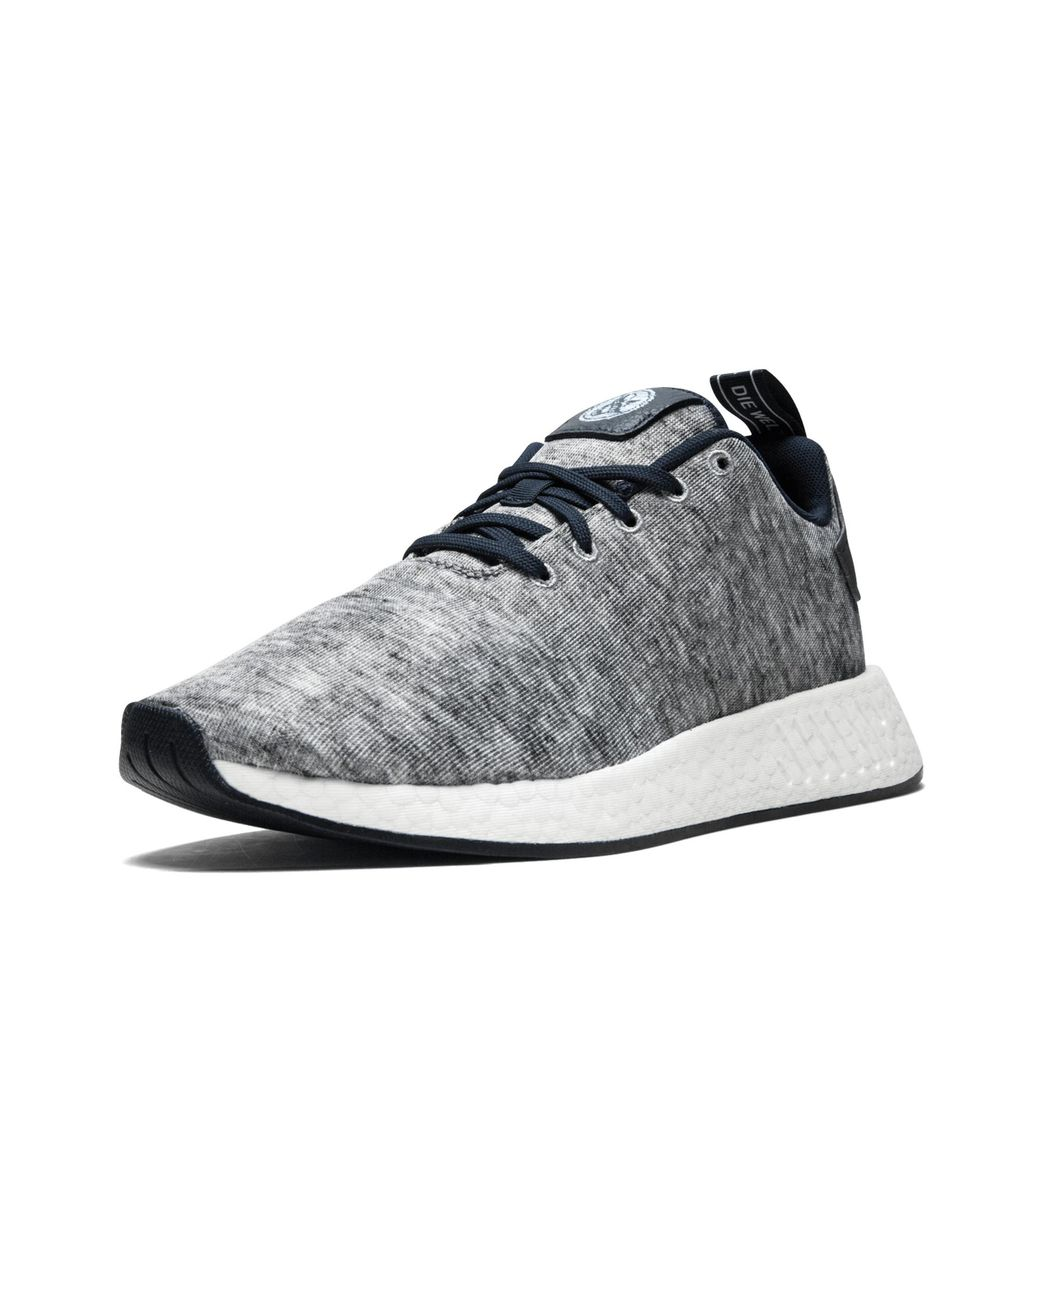 34a8c219b8704 adidas Nmd R2 Uas in Gray for Men - Save 20% - Lyst